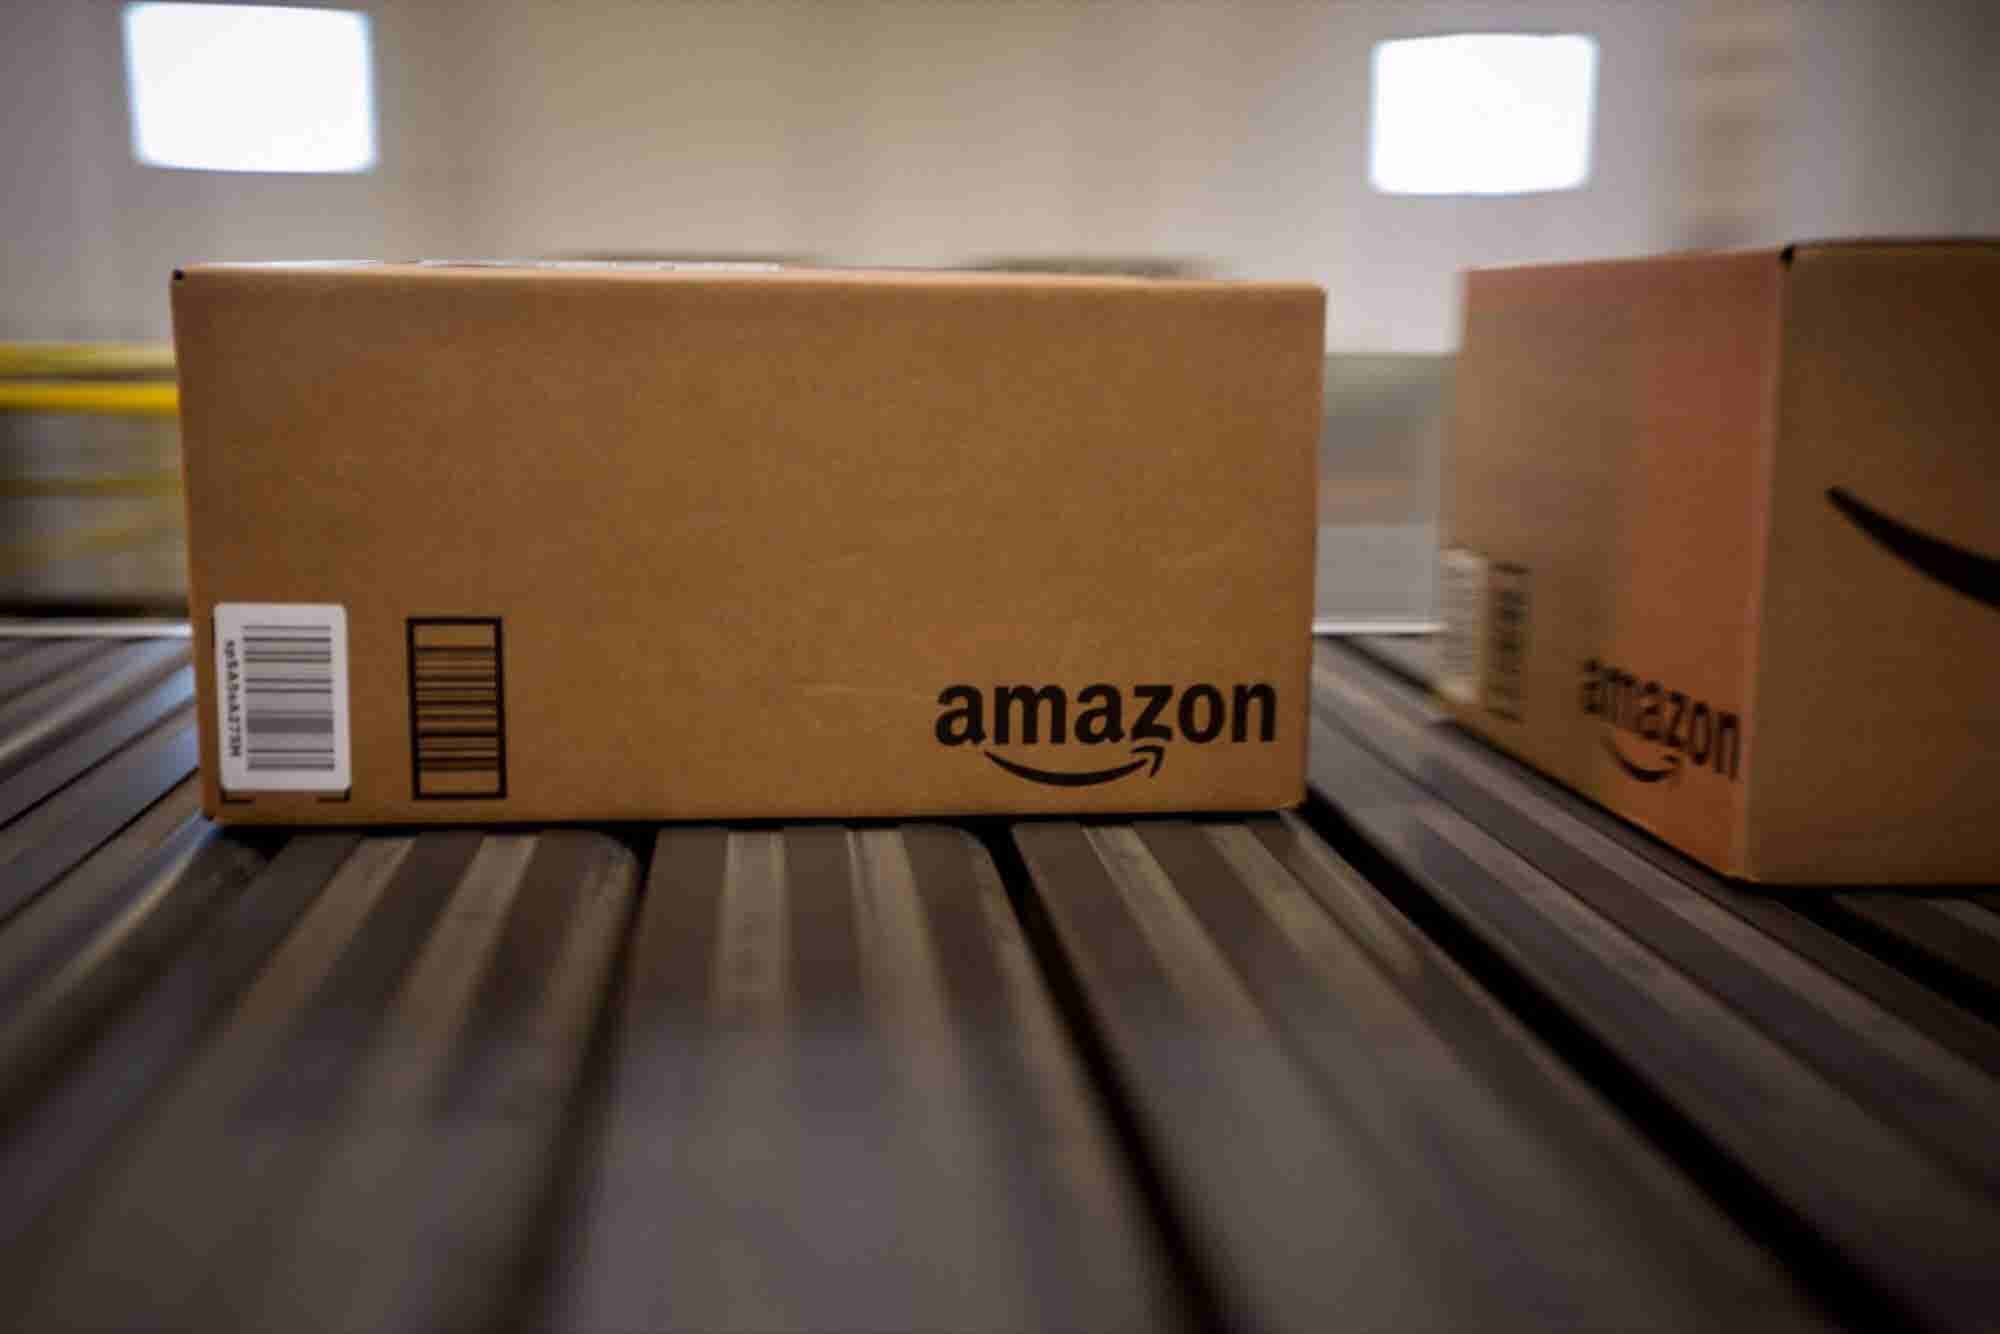 Amazon's Business Marketplace Hits $1 Billion in Sales